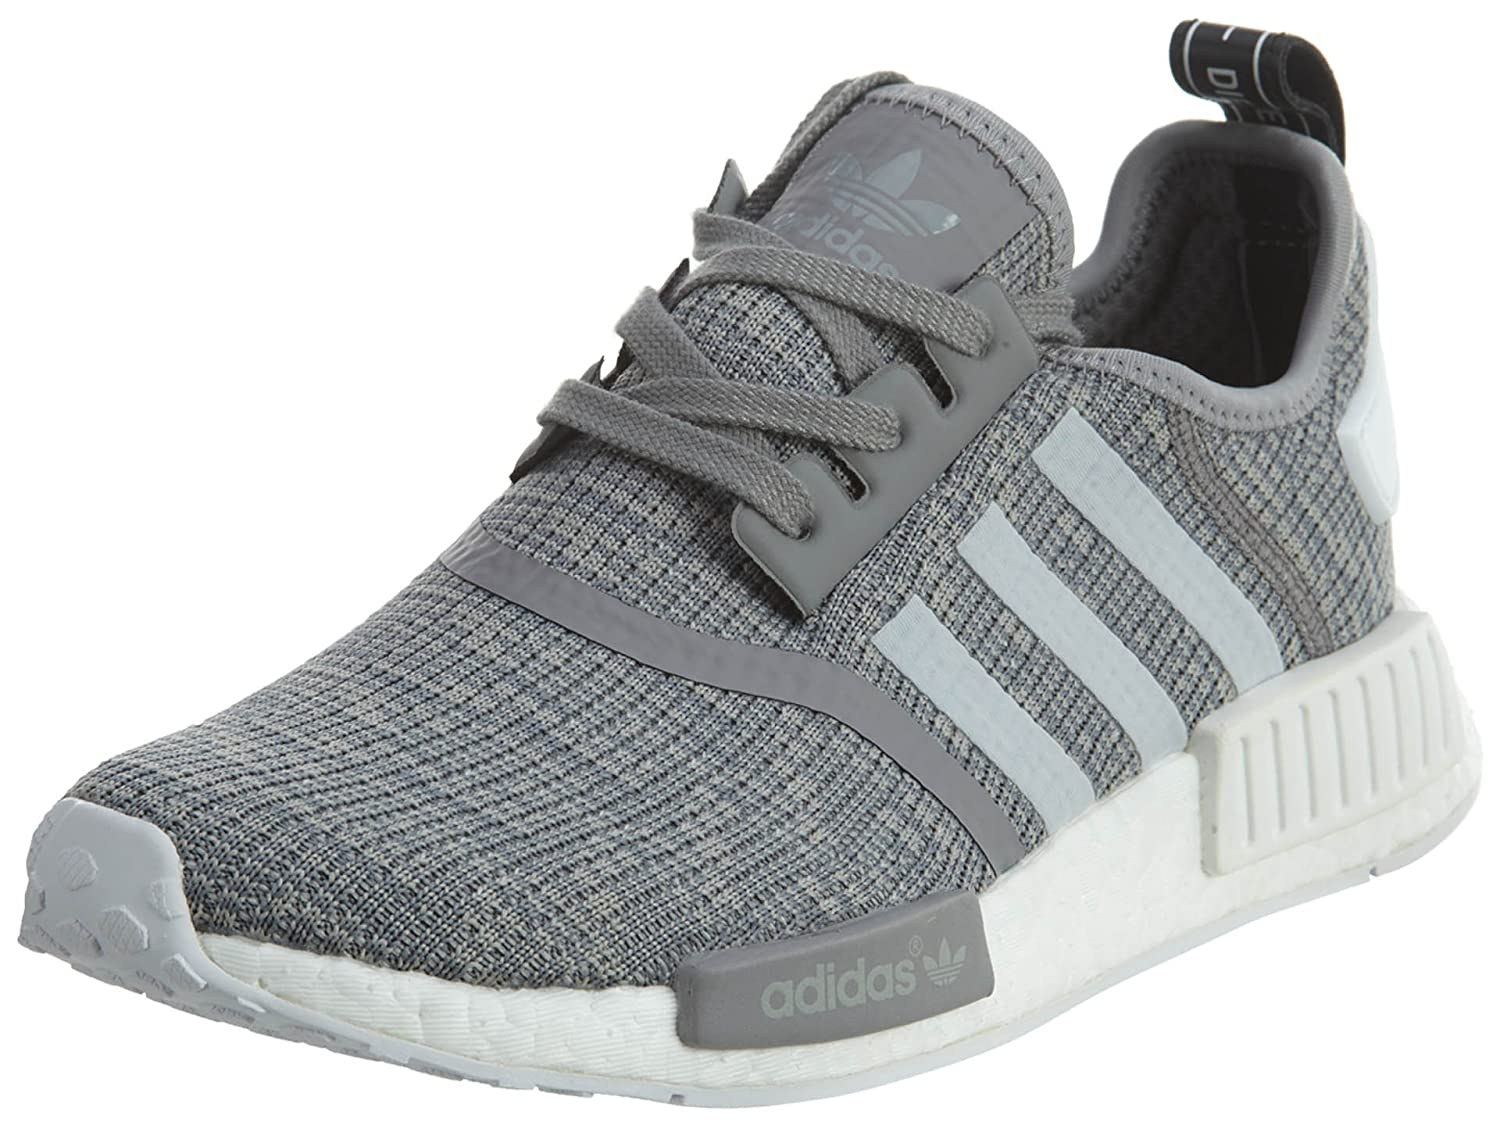 hot sale online 7e062 6fe23 Adidas NMD_R1